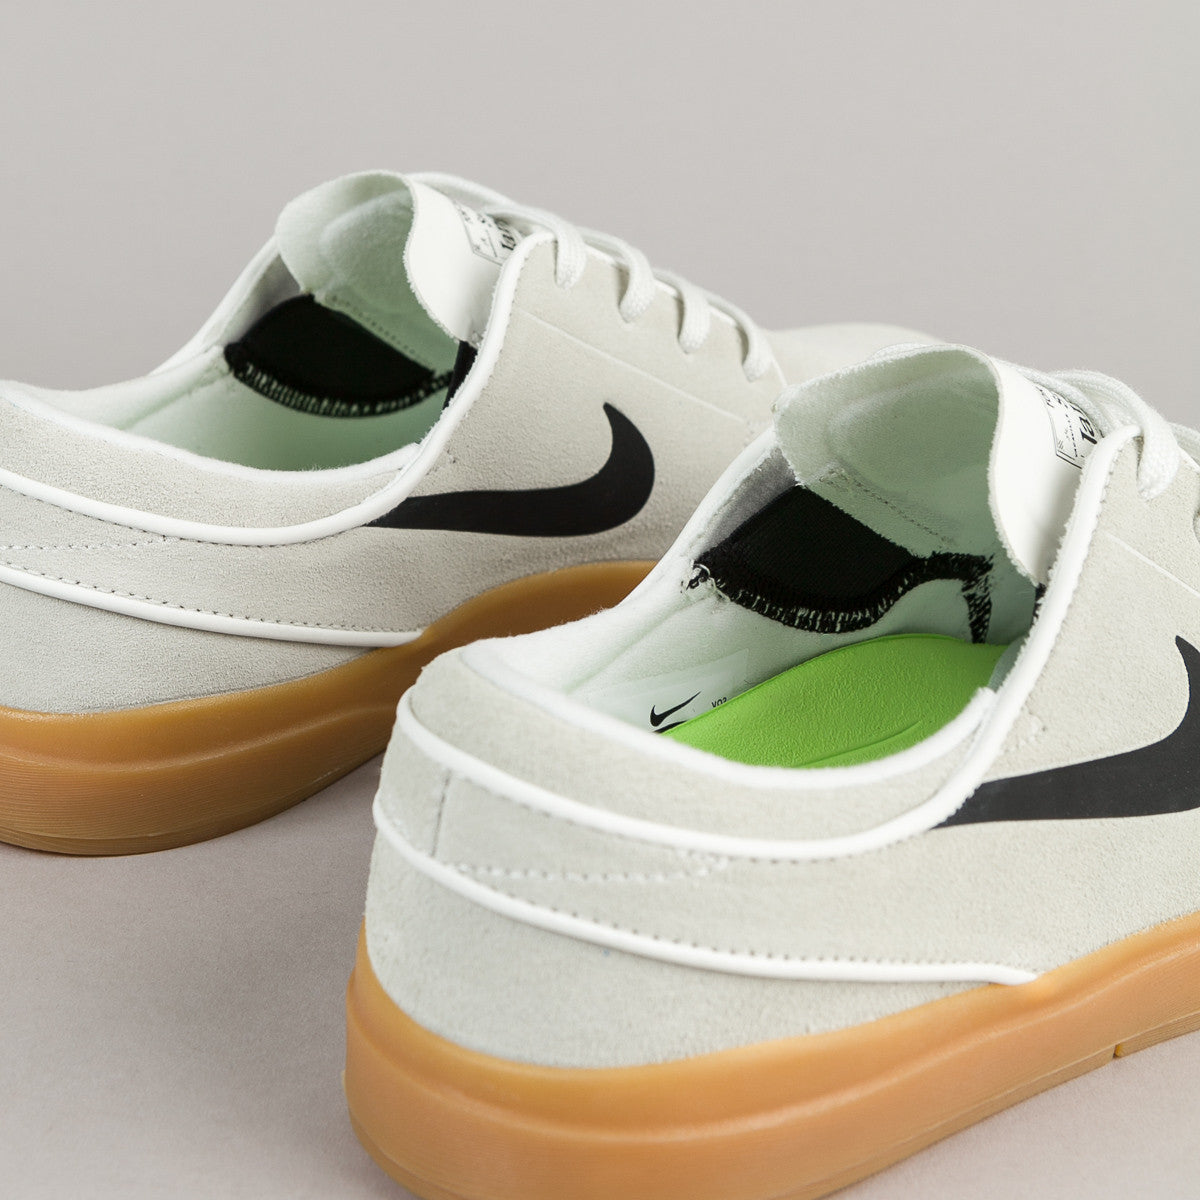 Nike SB Stefan Janoski Hyperfeel Shoes - Summit White / Black - Gum - Light Brown